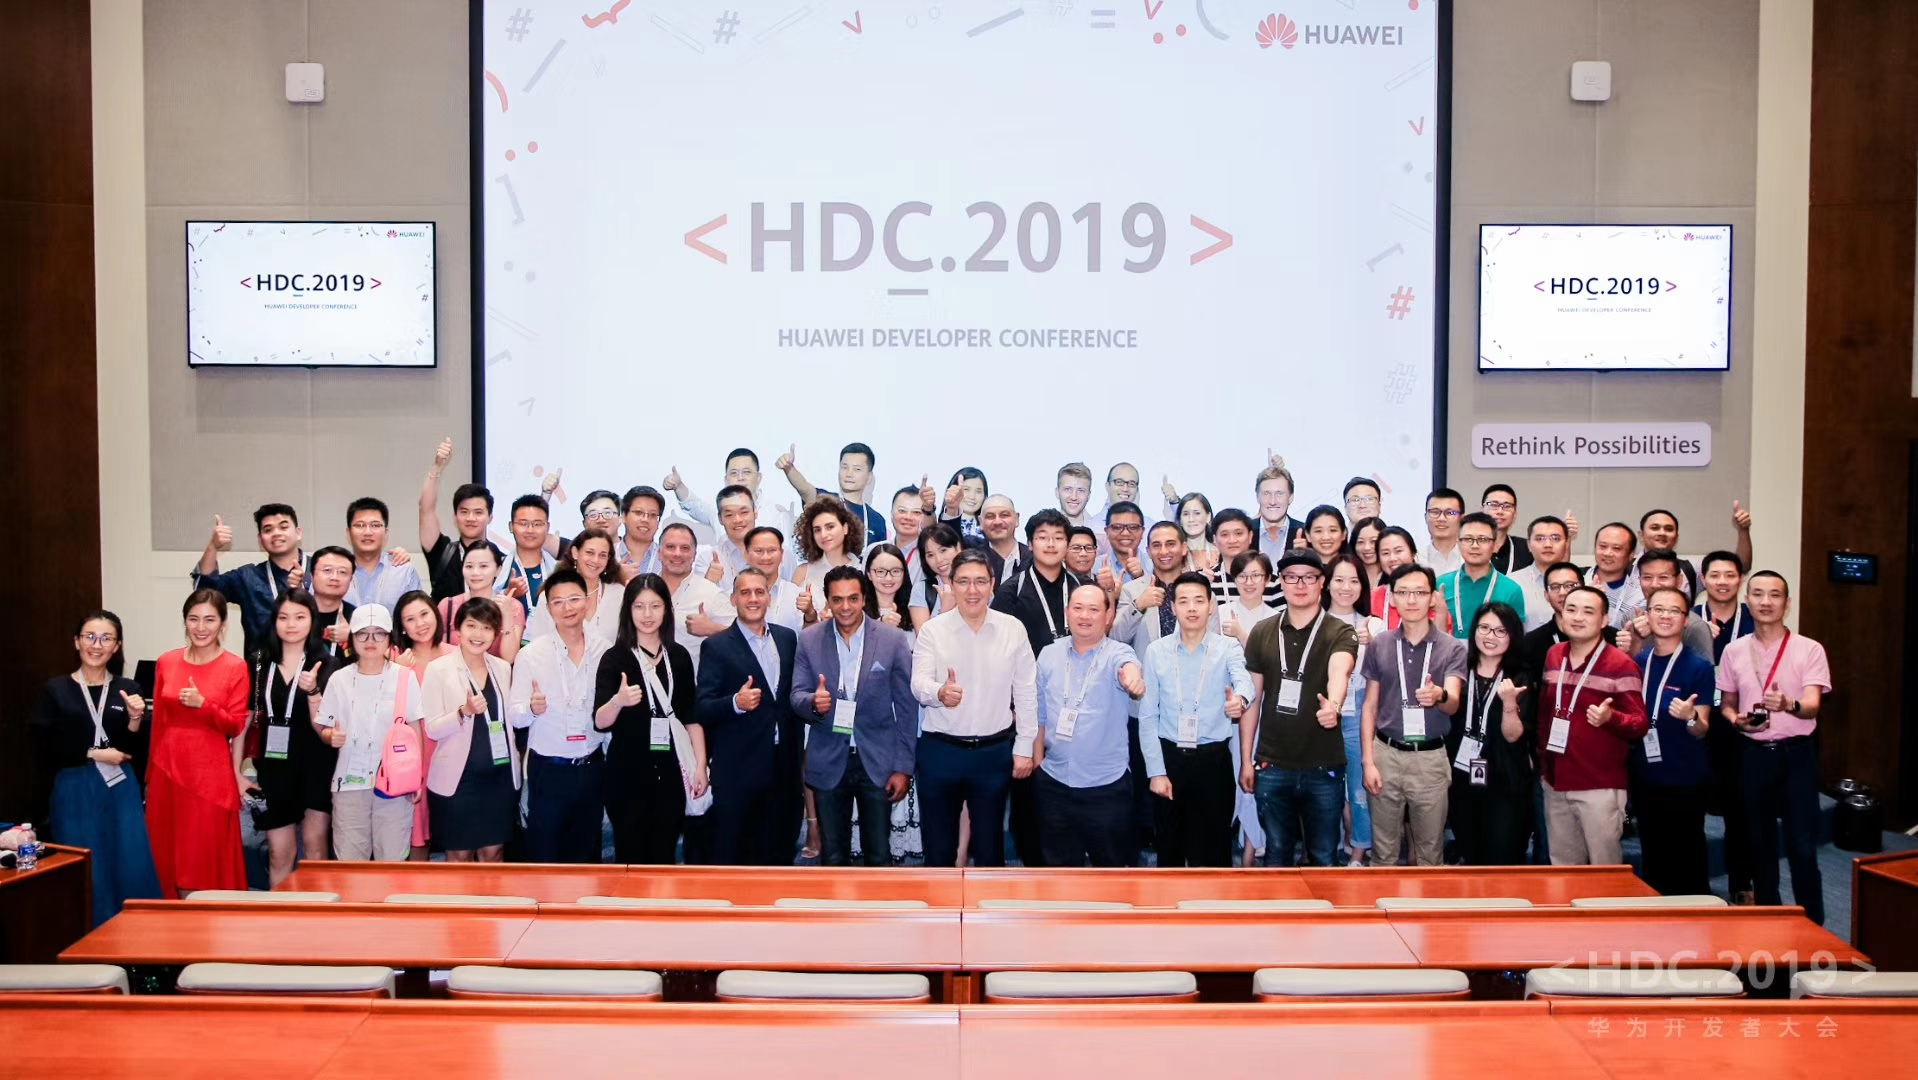 HUAWEI Developer Conference 2019